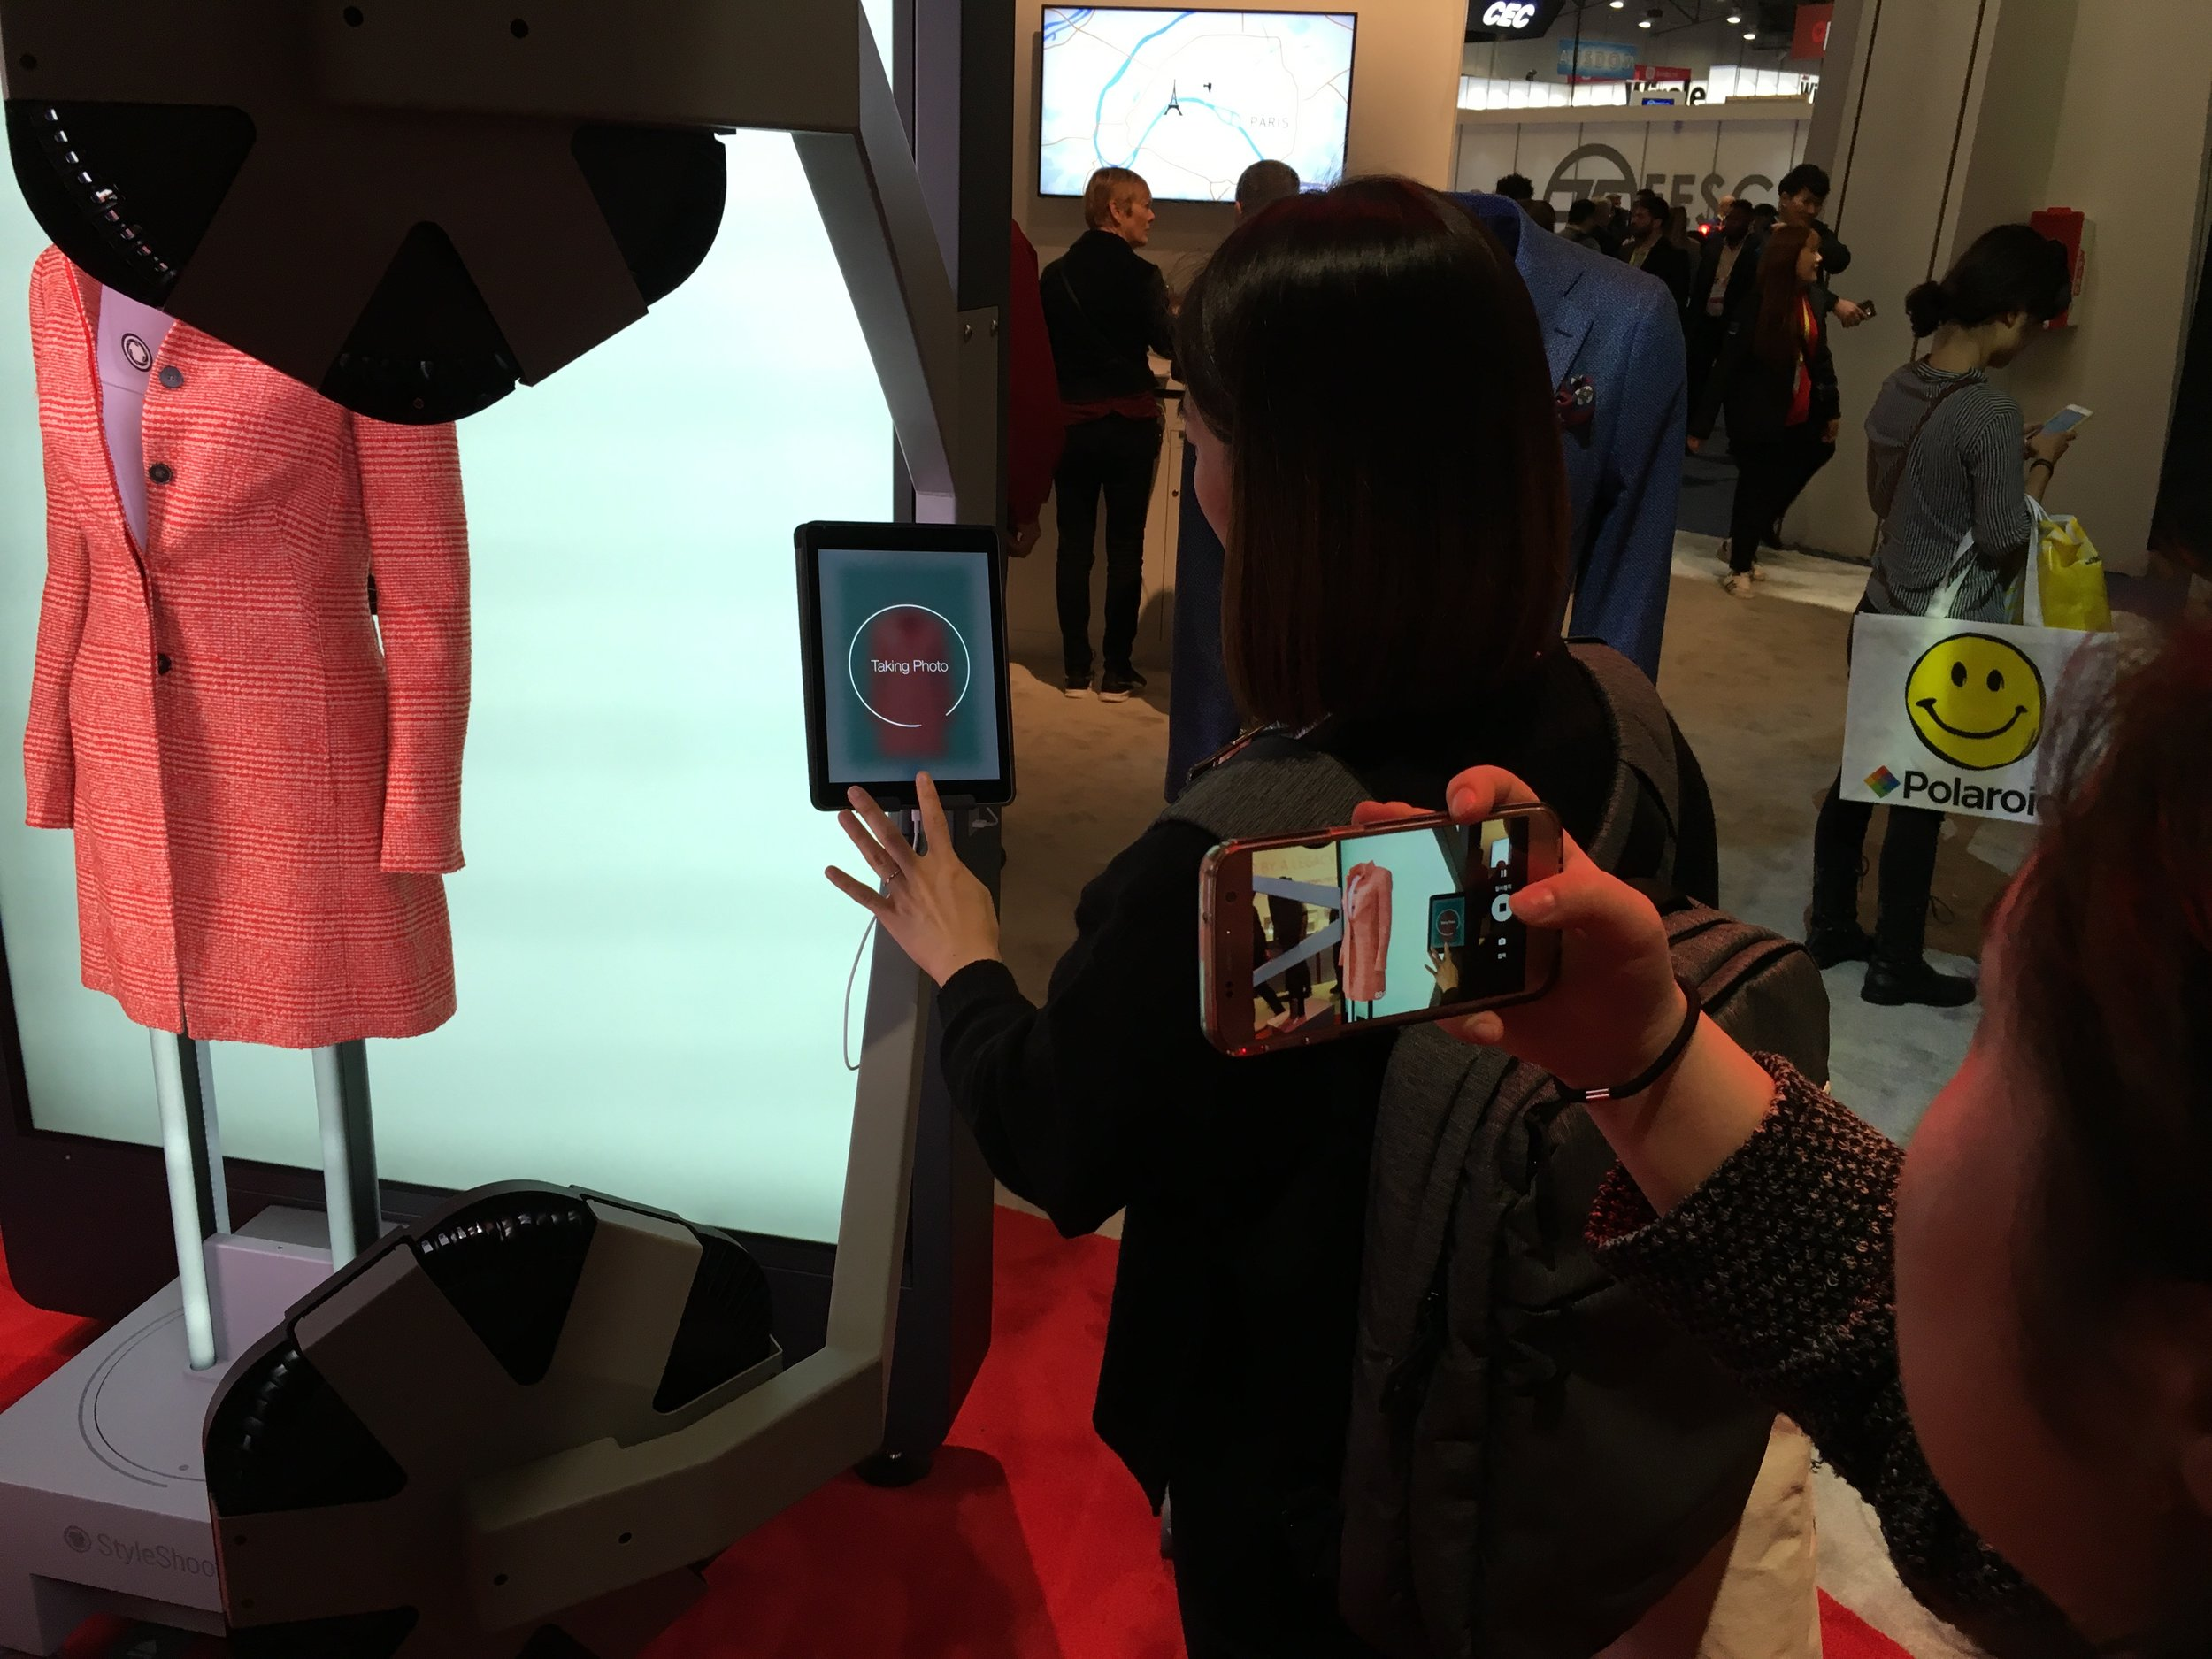 Photographing a smartphone camera photographing a photo machine